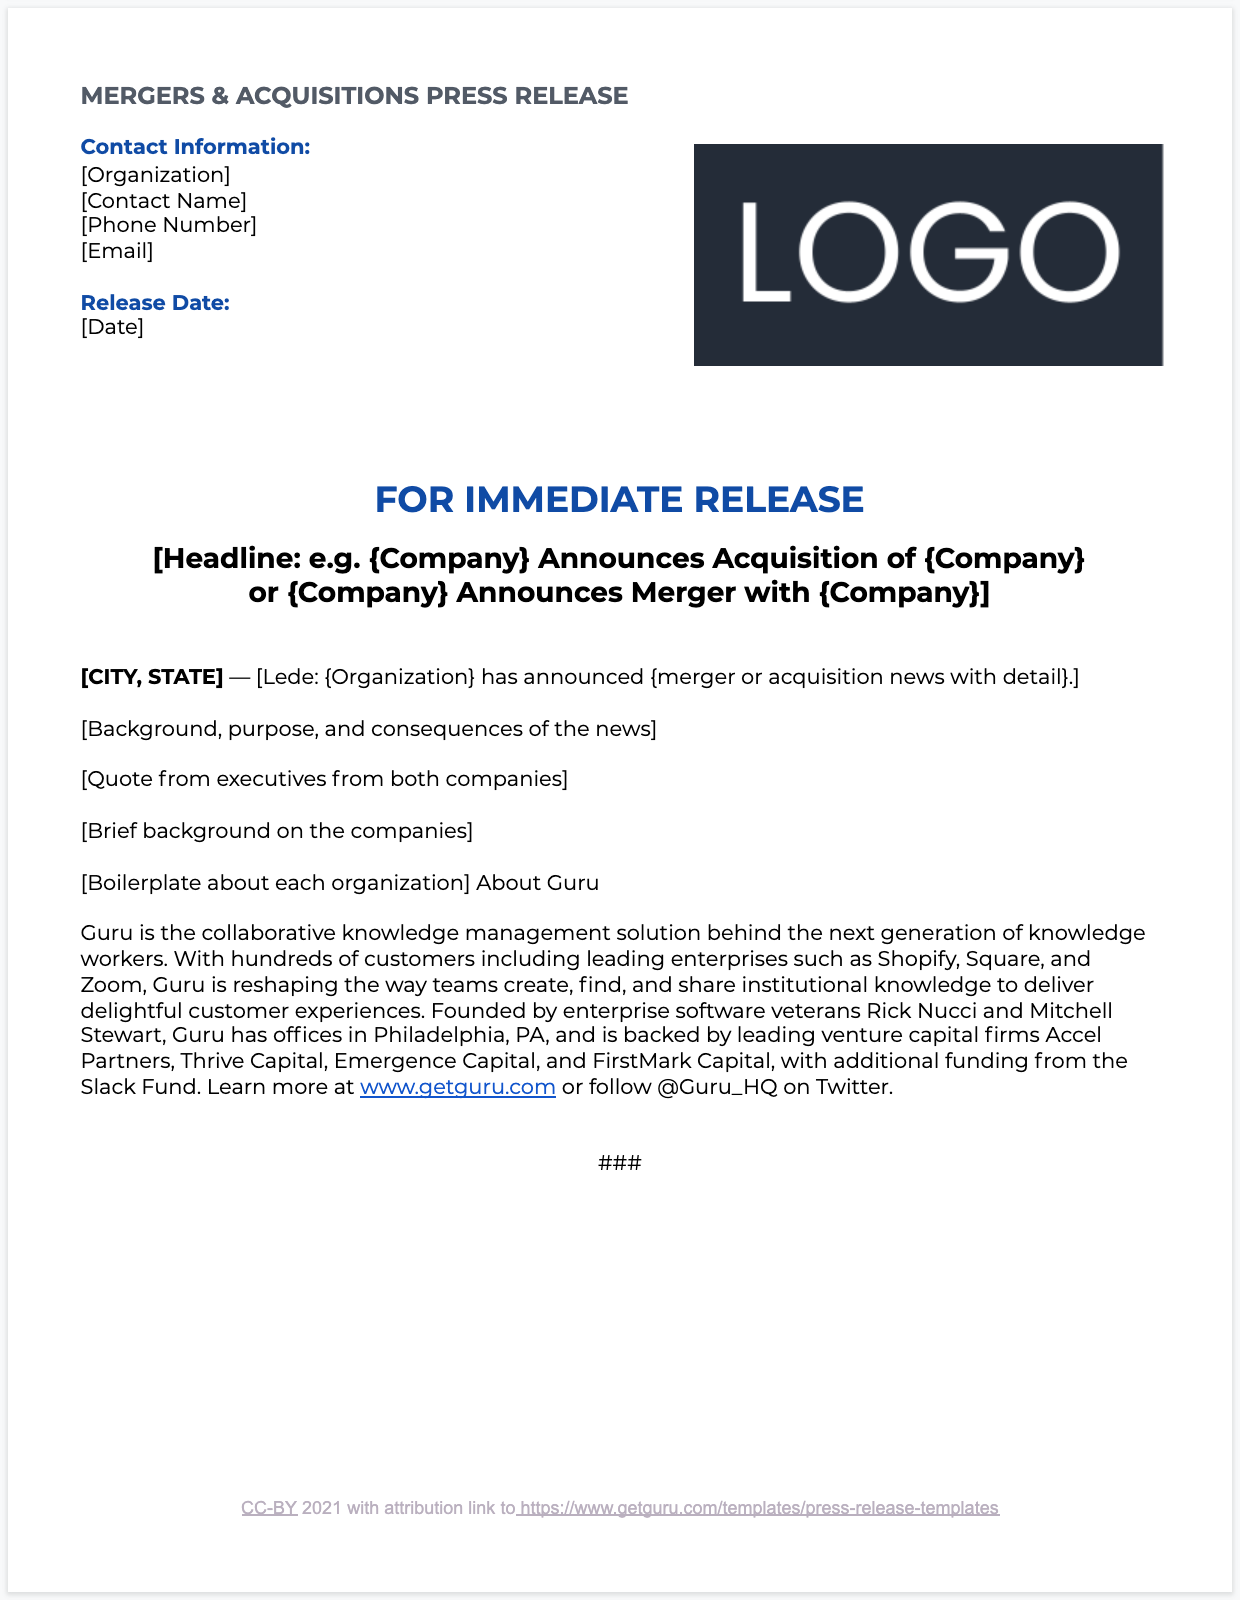 Mergers and Acquisitions Press Release Overview